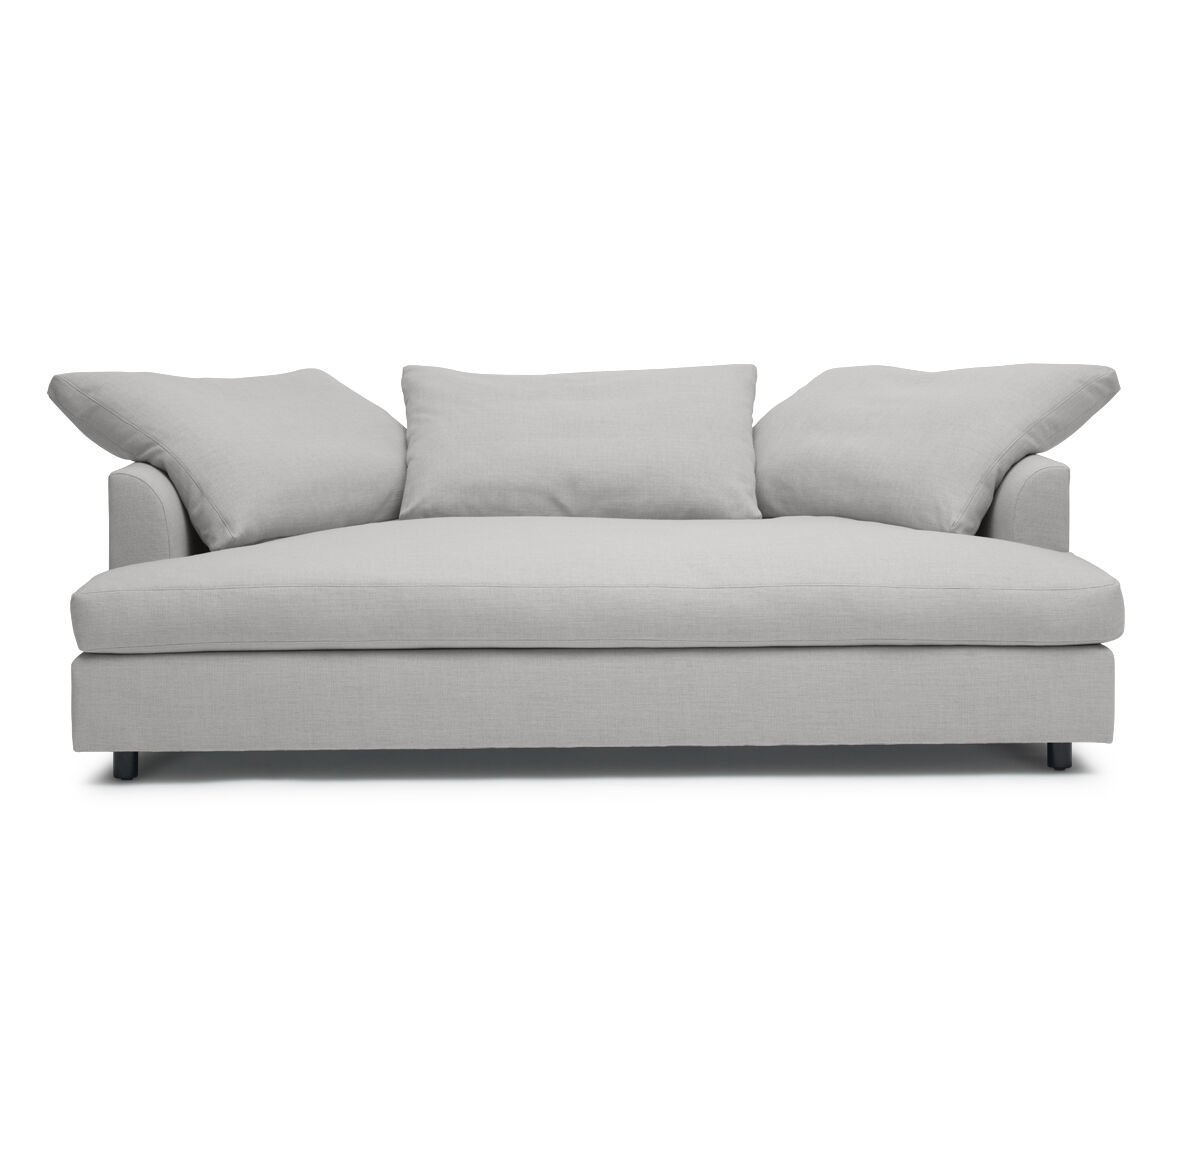 BIG EASY MEDIA SOFA LINGO - SILVER hi-res  sc 1 st  Sofas : chaise lounge bed sofa - Sectionals, Sofas & Couches